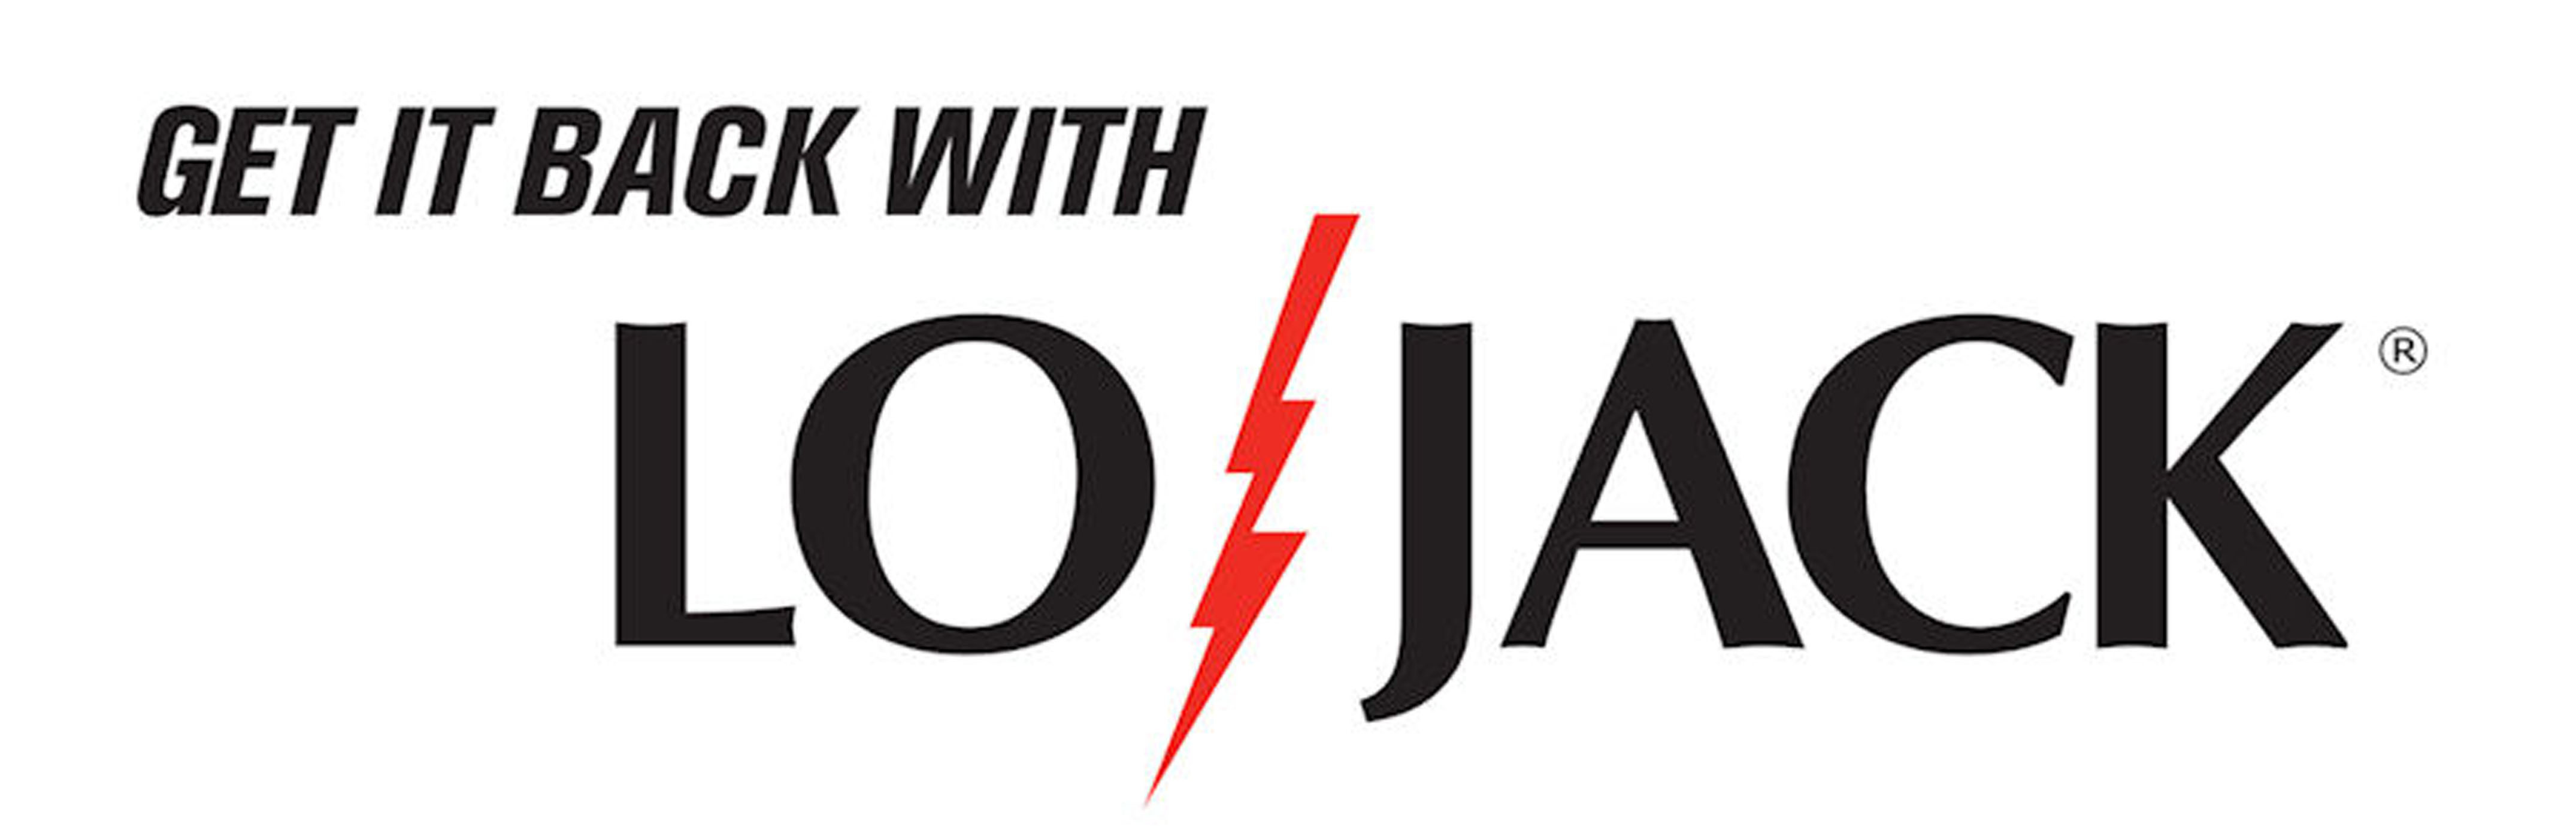 Lojack And Tomtom Partner Up Autos Ca